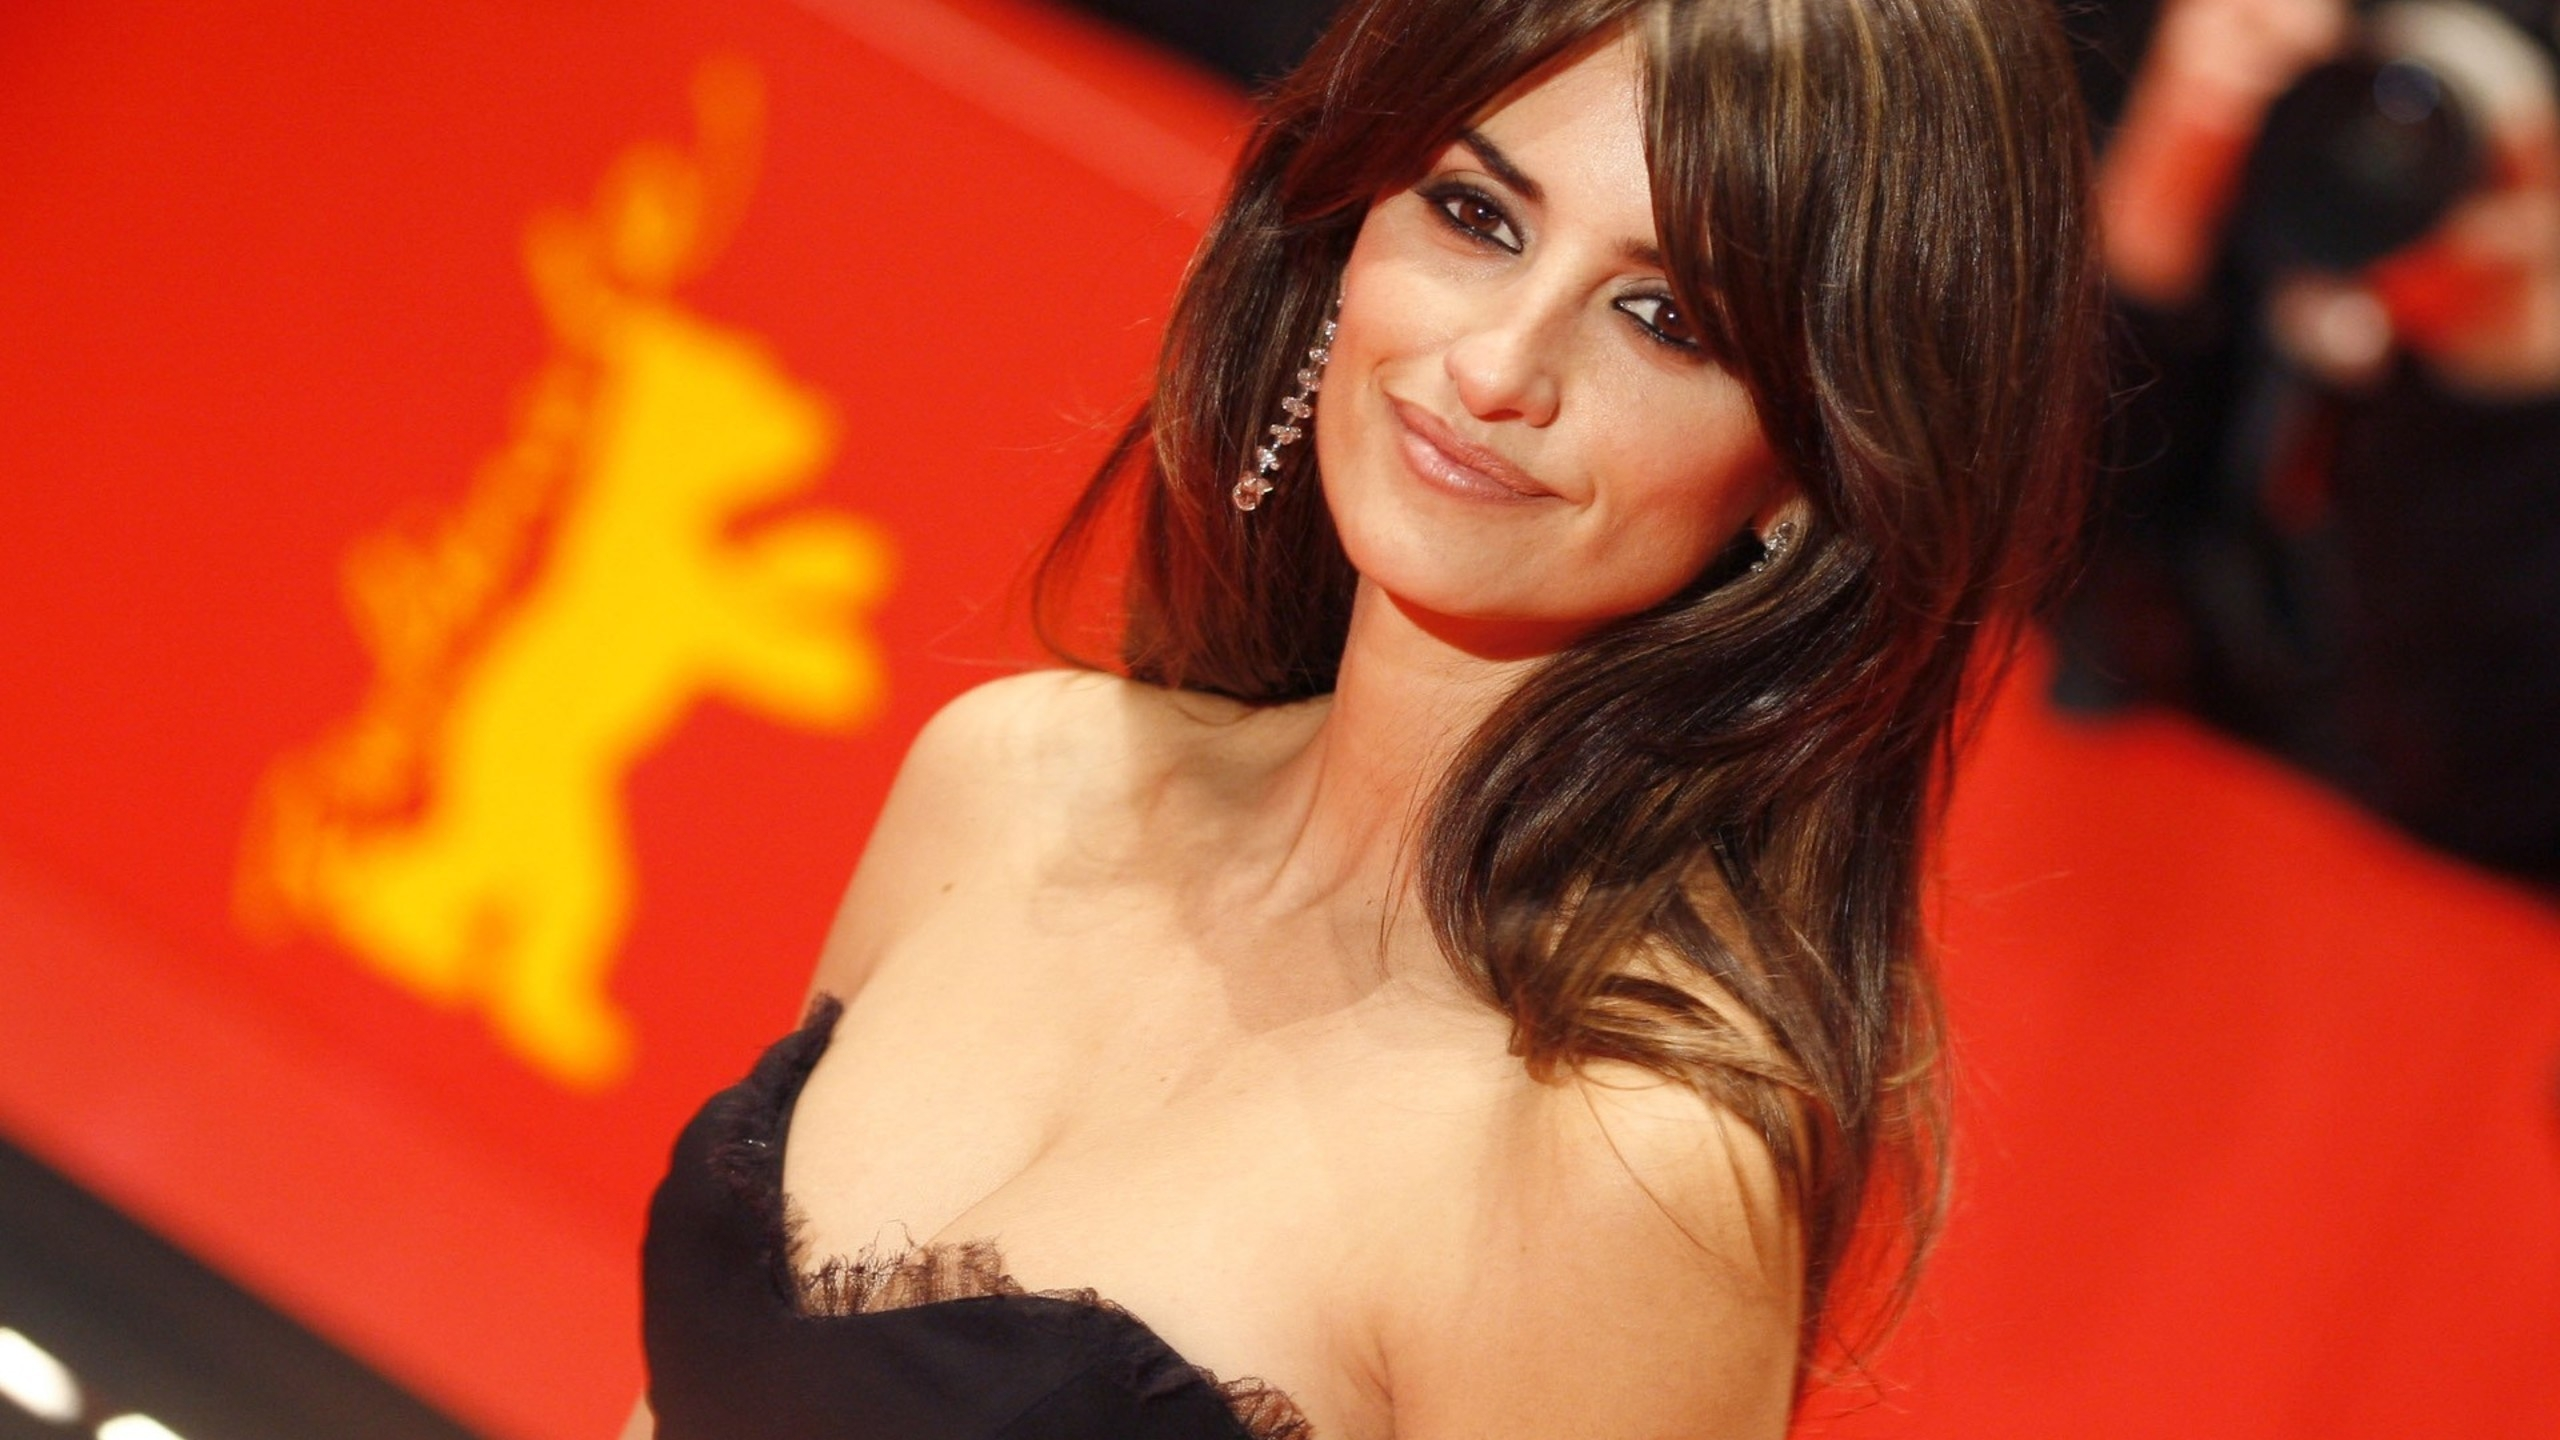 Gorgeous Penelope Cruz for 2560x1440 HDTV resolution